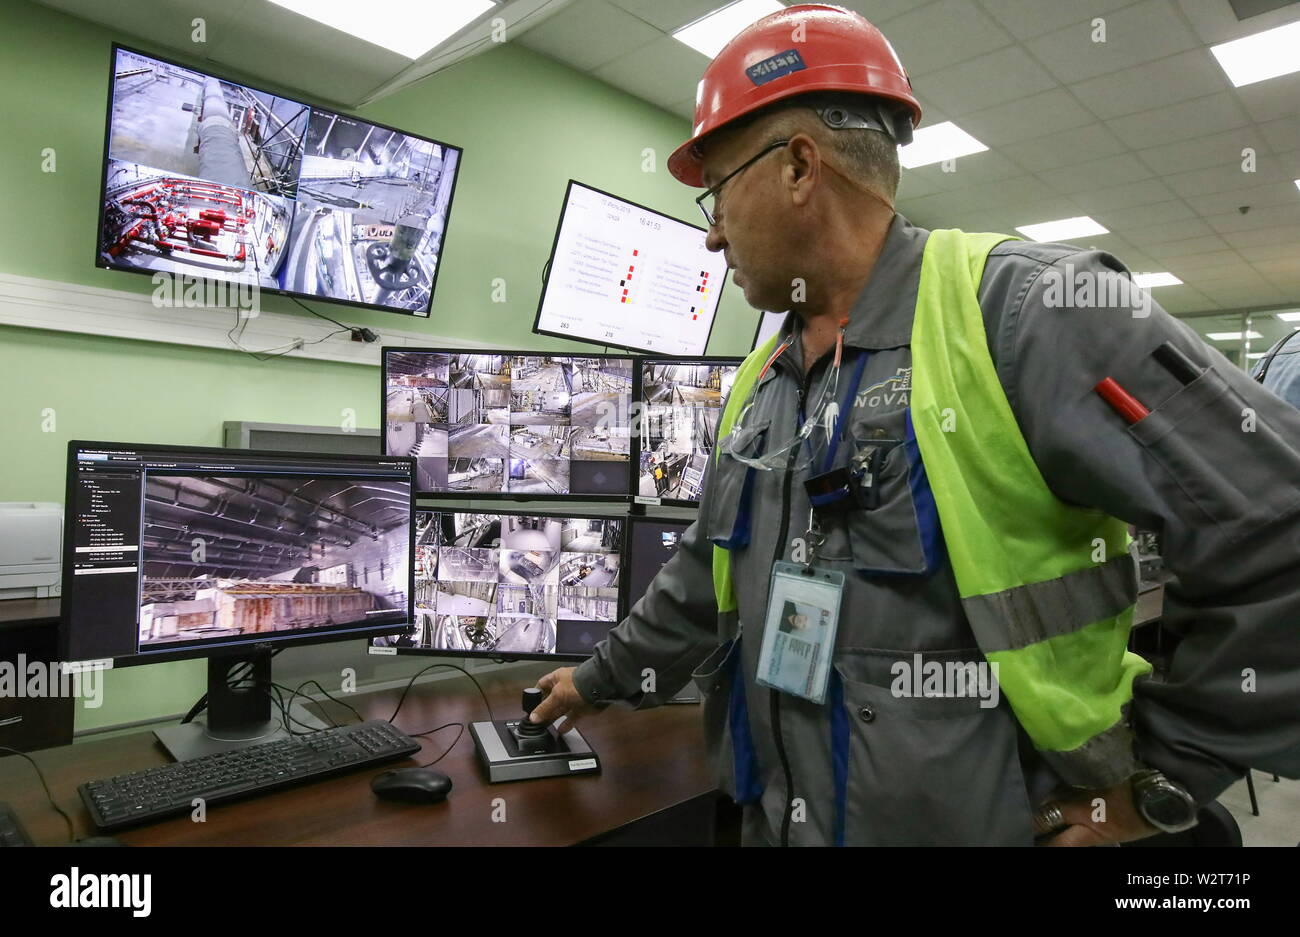 Pripyat, Ukraine. 10th July, 2019. PRIPYAT, UKRAINE - JULY 10, 2019: A worker in a safety helmet in a CCTV control room at the Chernobyl Nuclear Power Plant; the EU has officially handed over the new mobile metal structure, officially known as the New Safe Confinement, built over Reactor 4 of the Chernobyl Nuclear Power Plant to the Ukrainian authorities; the construction of the 1.5bn euro metal shelter began in 2012; Reactor 4 is the site of the 1986 Chernobyl disaster. Pyotr Sivkov/TASS Credit: ITAR-TASS News Agency/Alamy Live News - Stock Image